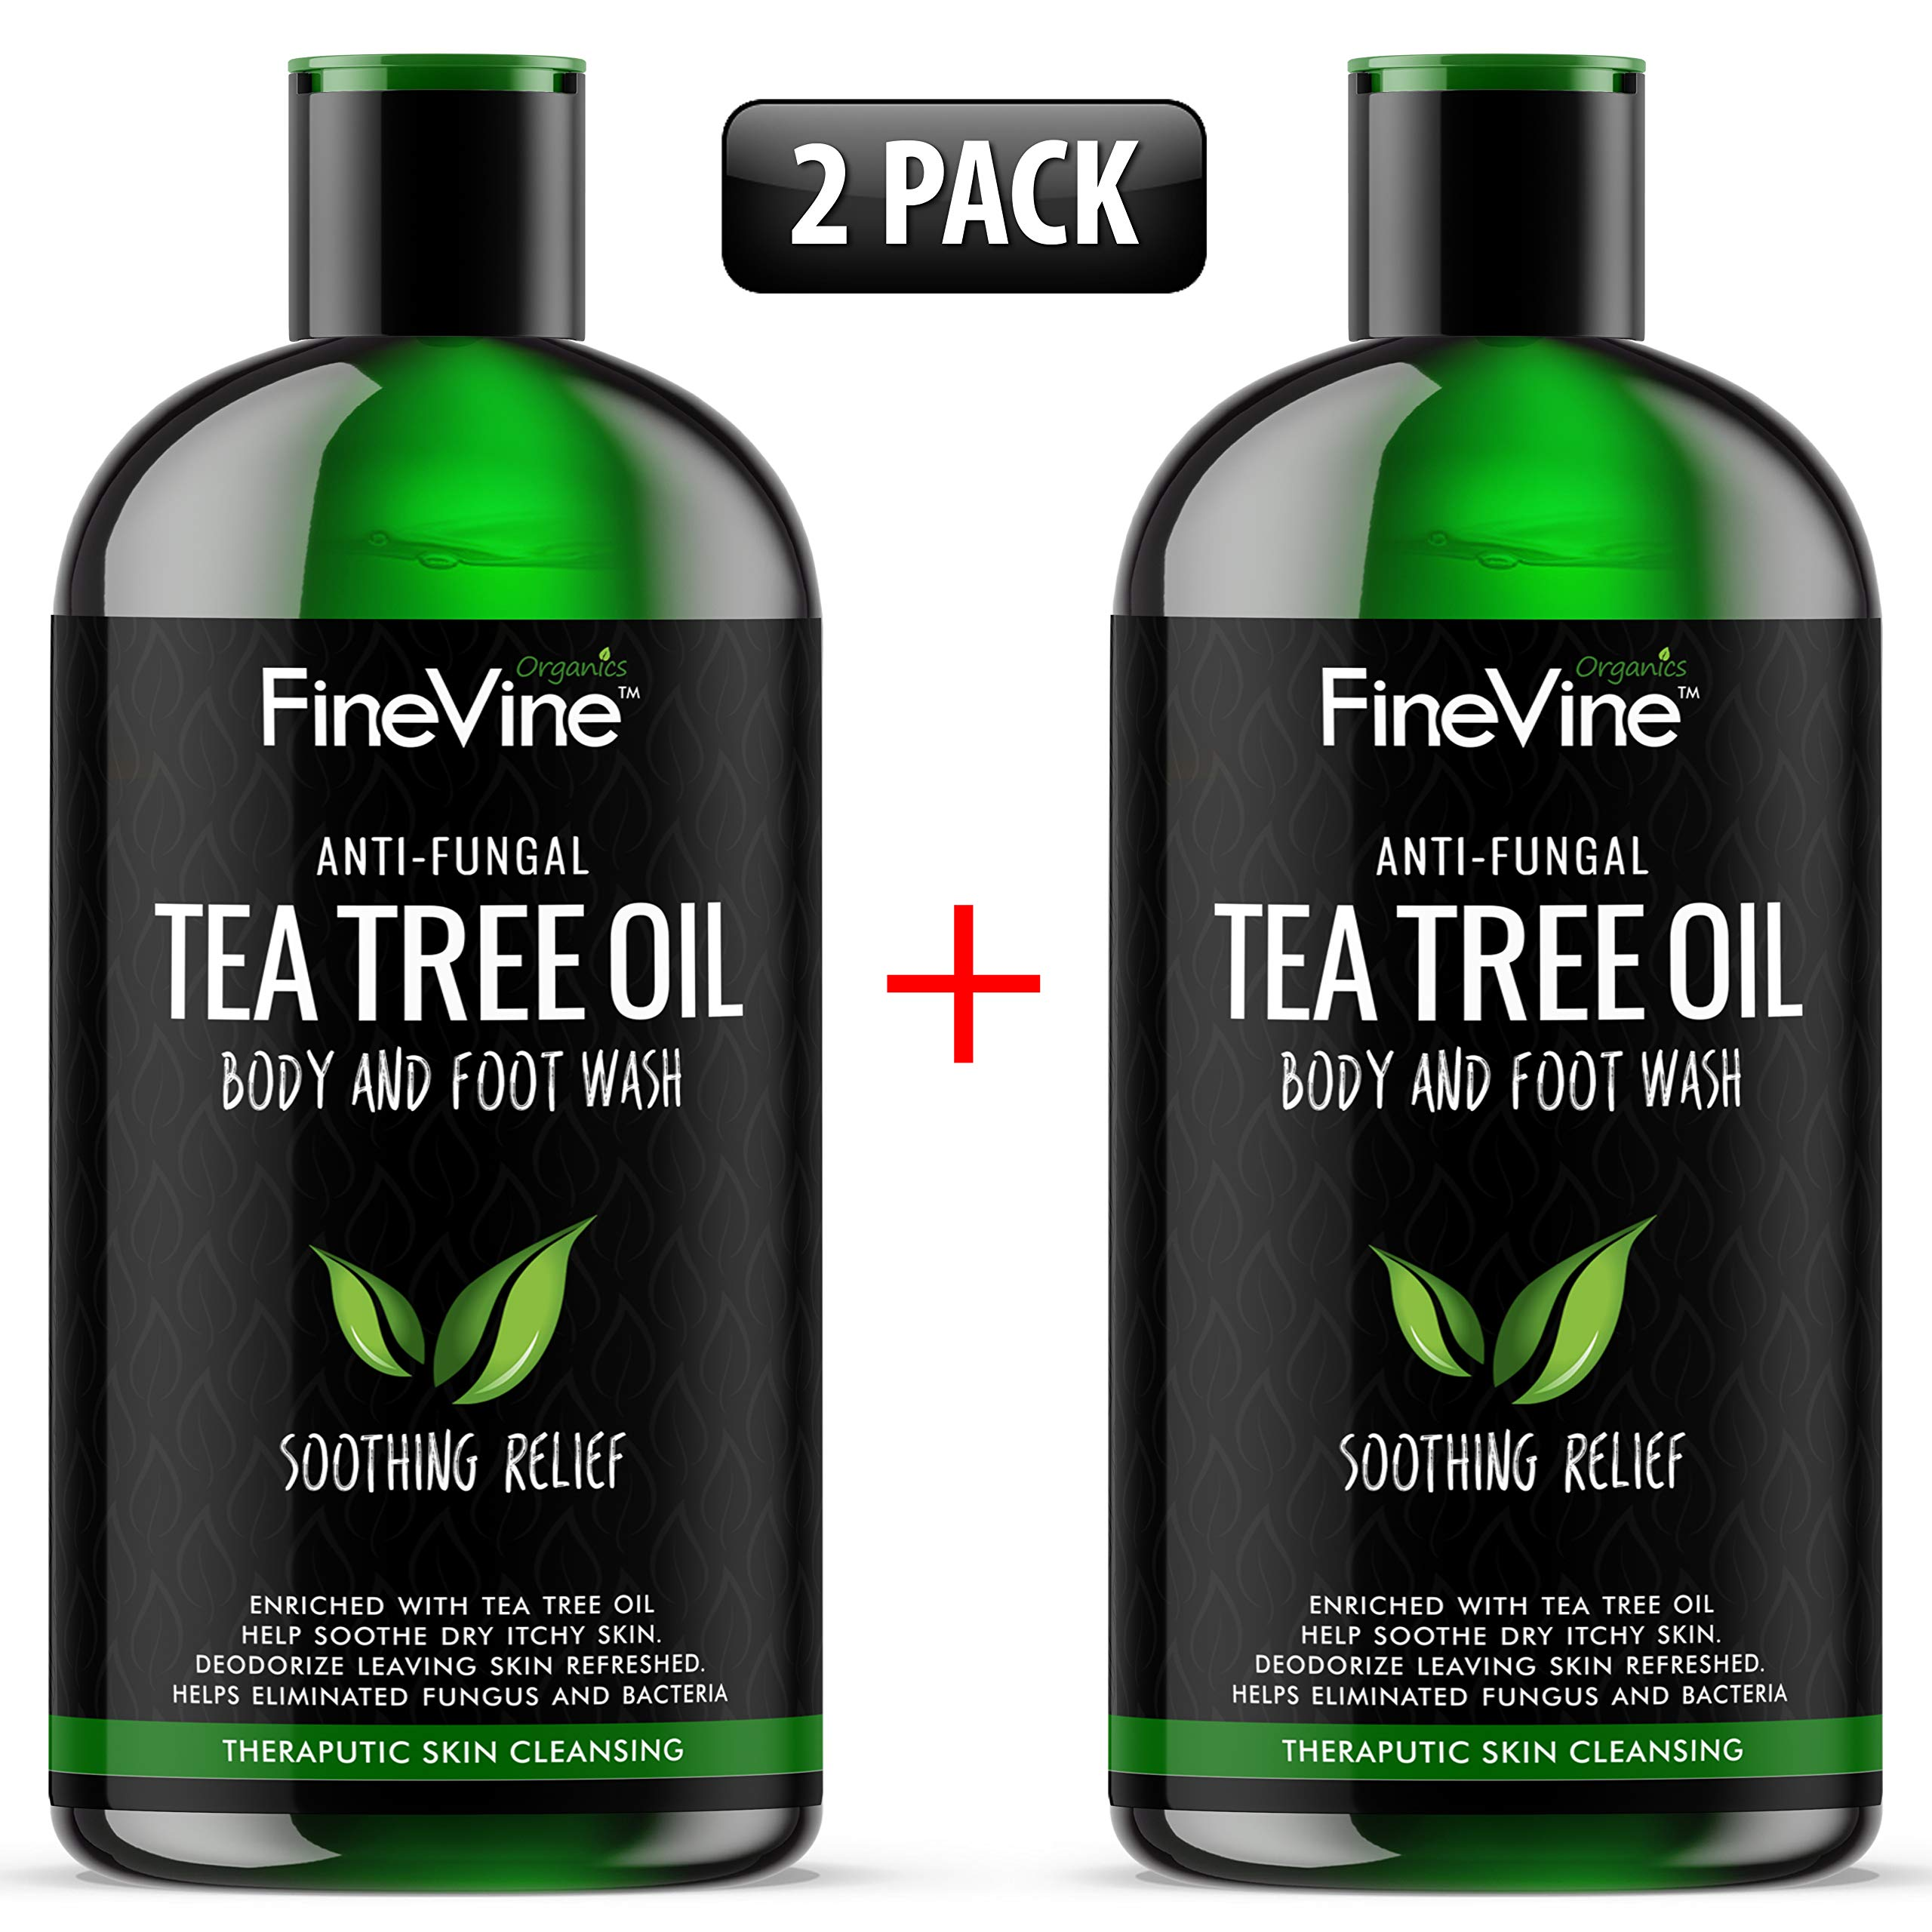 Antifungal Tea Tree Oil Body Wash - Made In USA - Helps Jock itch, Nail Fungus & Athletes Foot Treat, Eczema, Ringworm and Body Odor - Best Natural Soap For Skin Irritations. 2 Pack